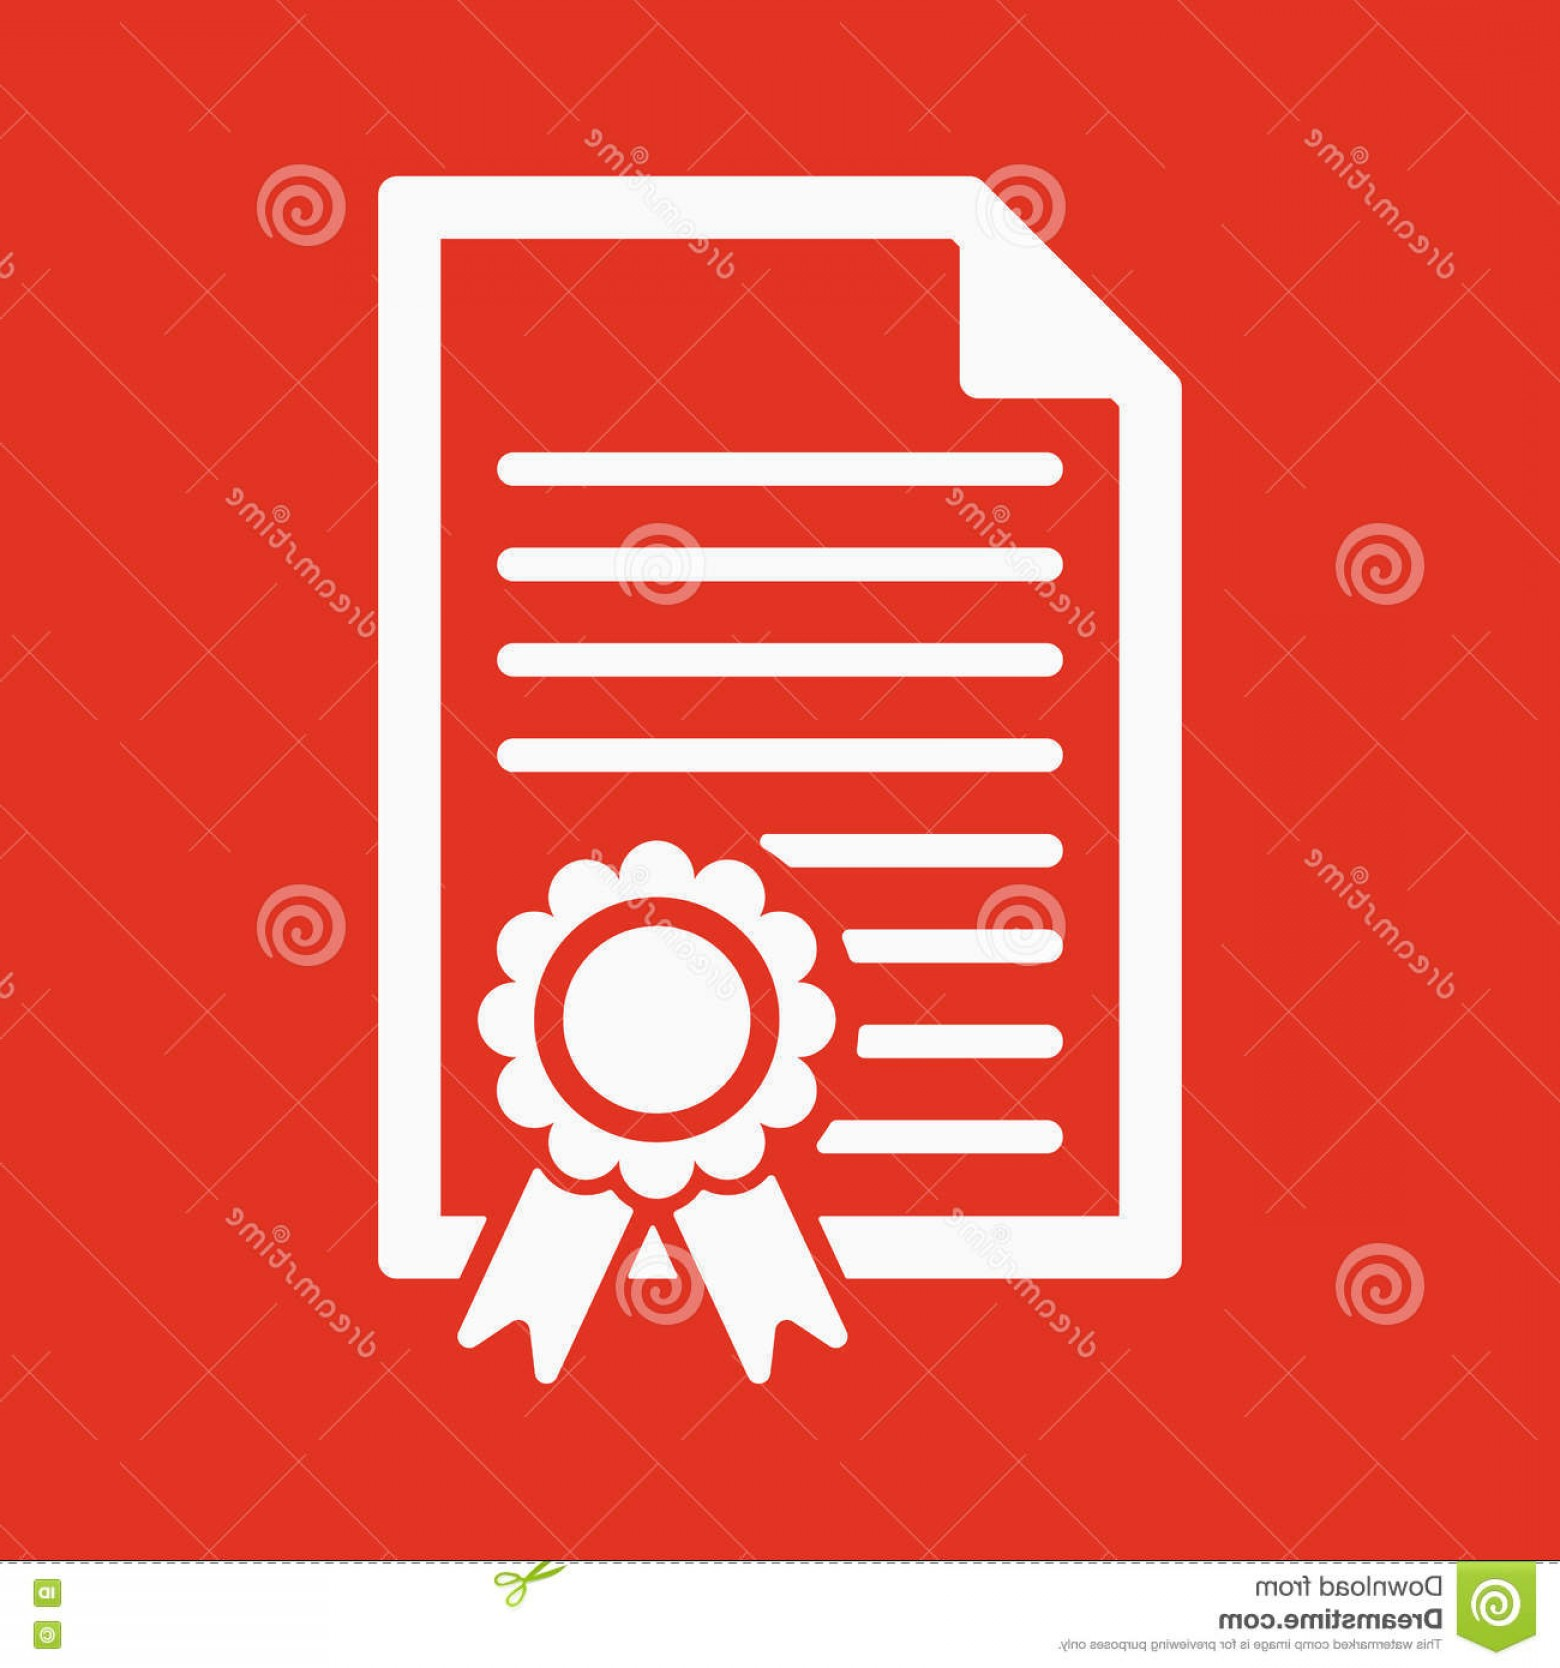 Diploma Icon Vector: Stock Illustration Diploma Icon Certificate Symbol Flat Vector Illustration Image